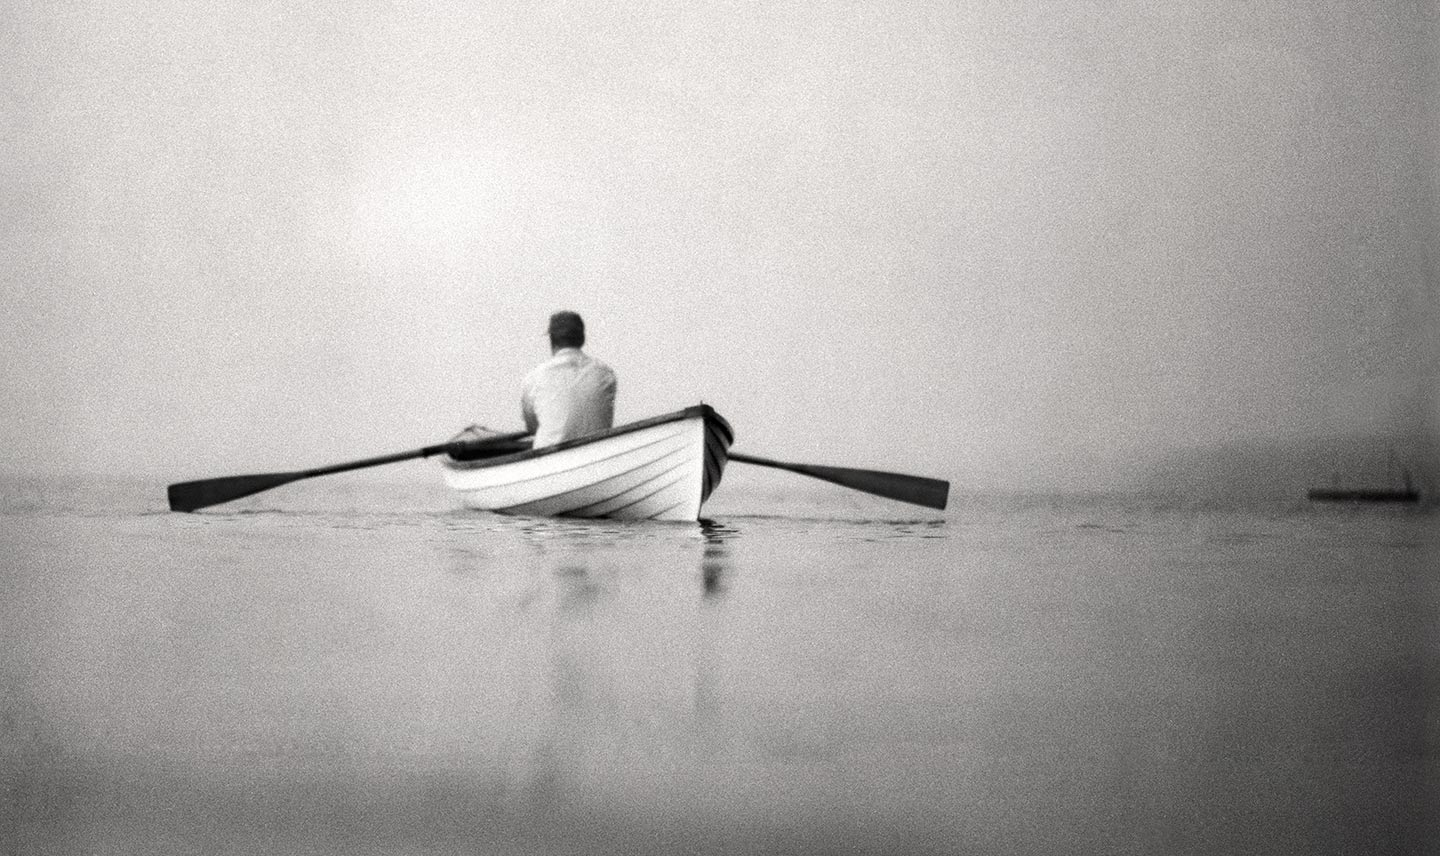 Black and White Image of Man Canoeing